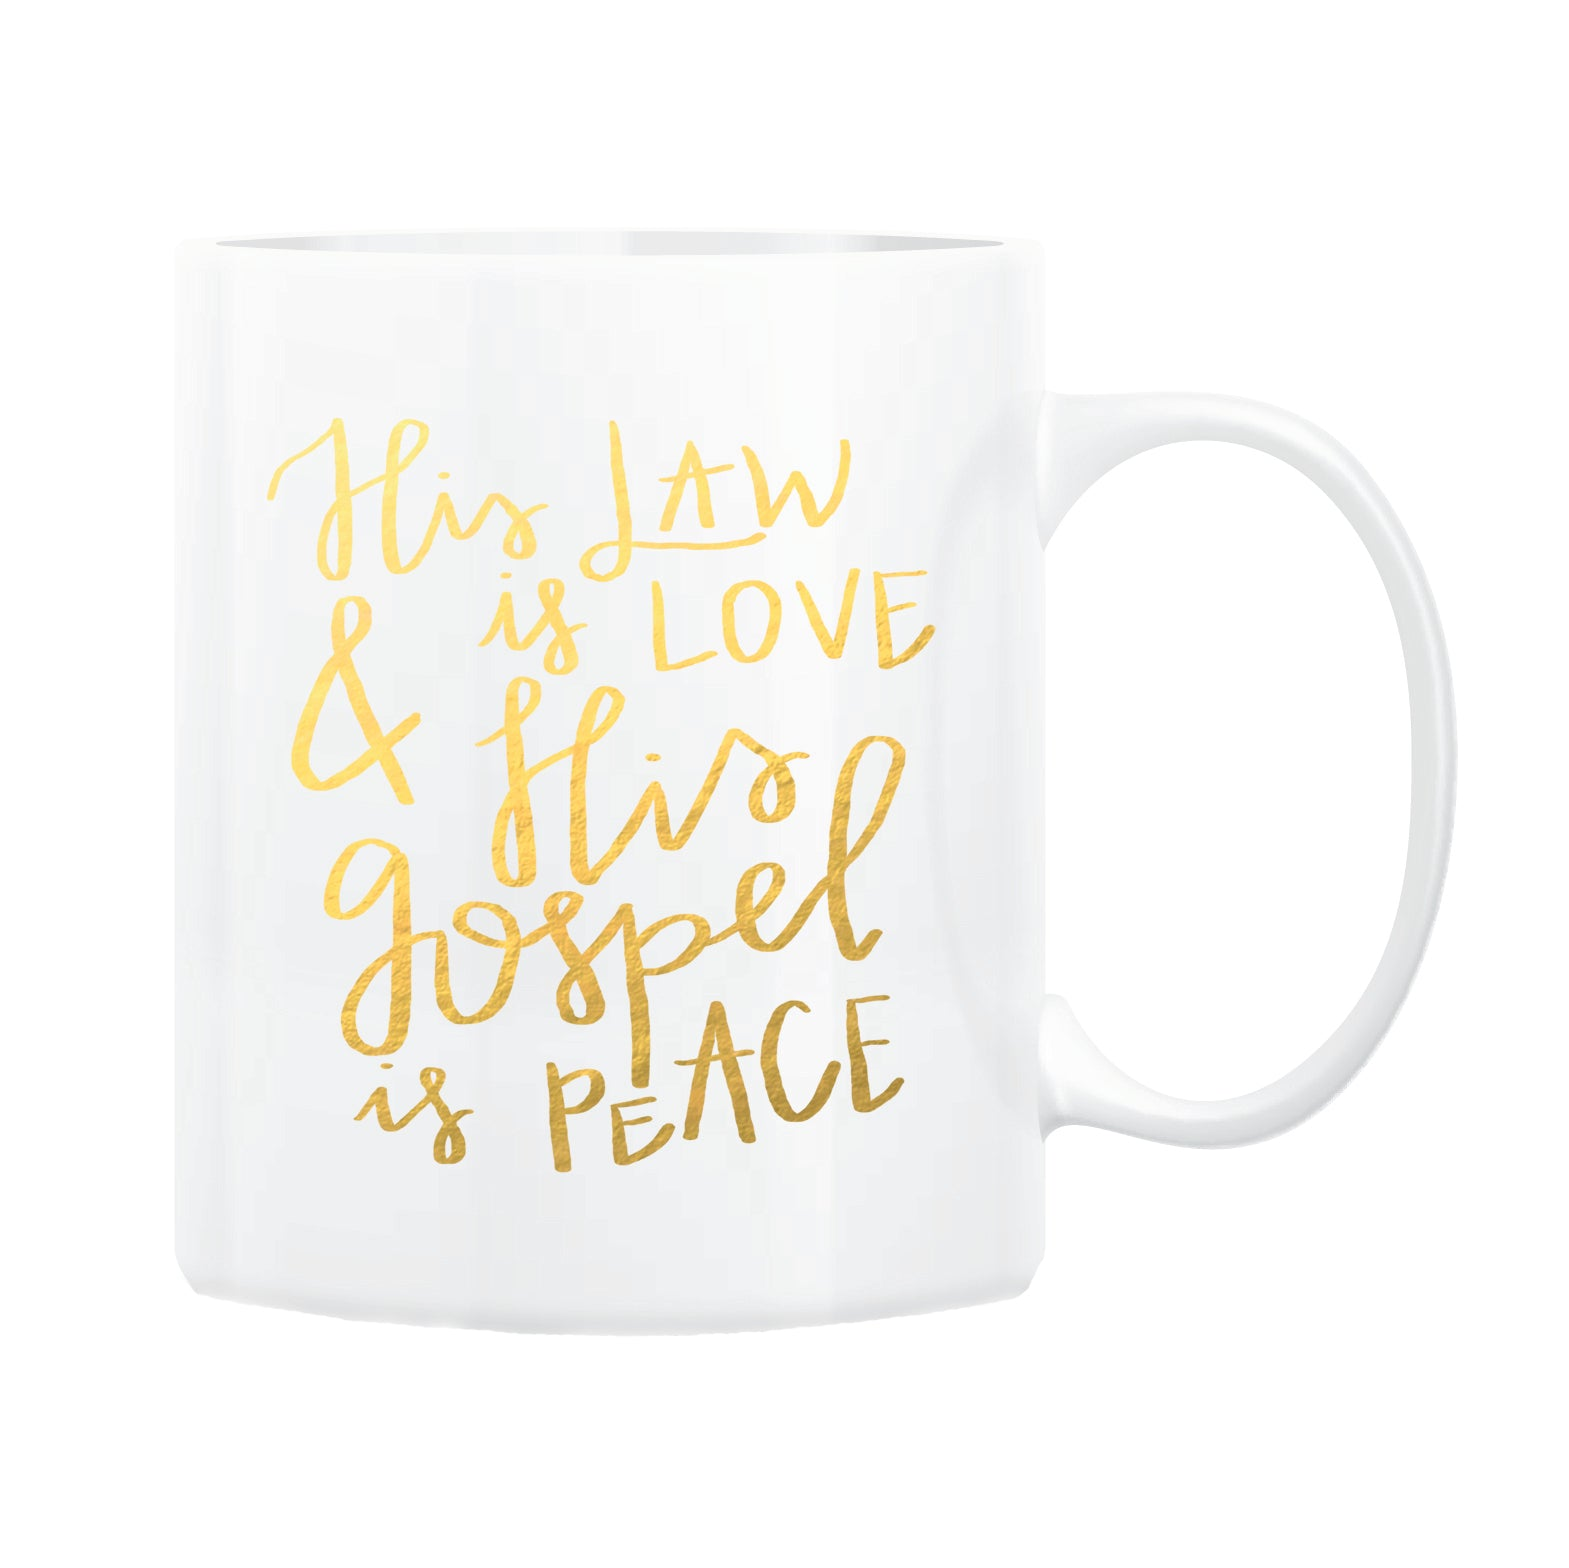 His Law is Love Coffee Mug